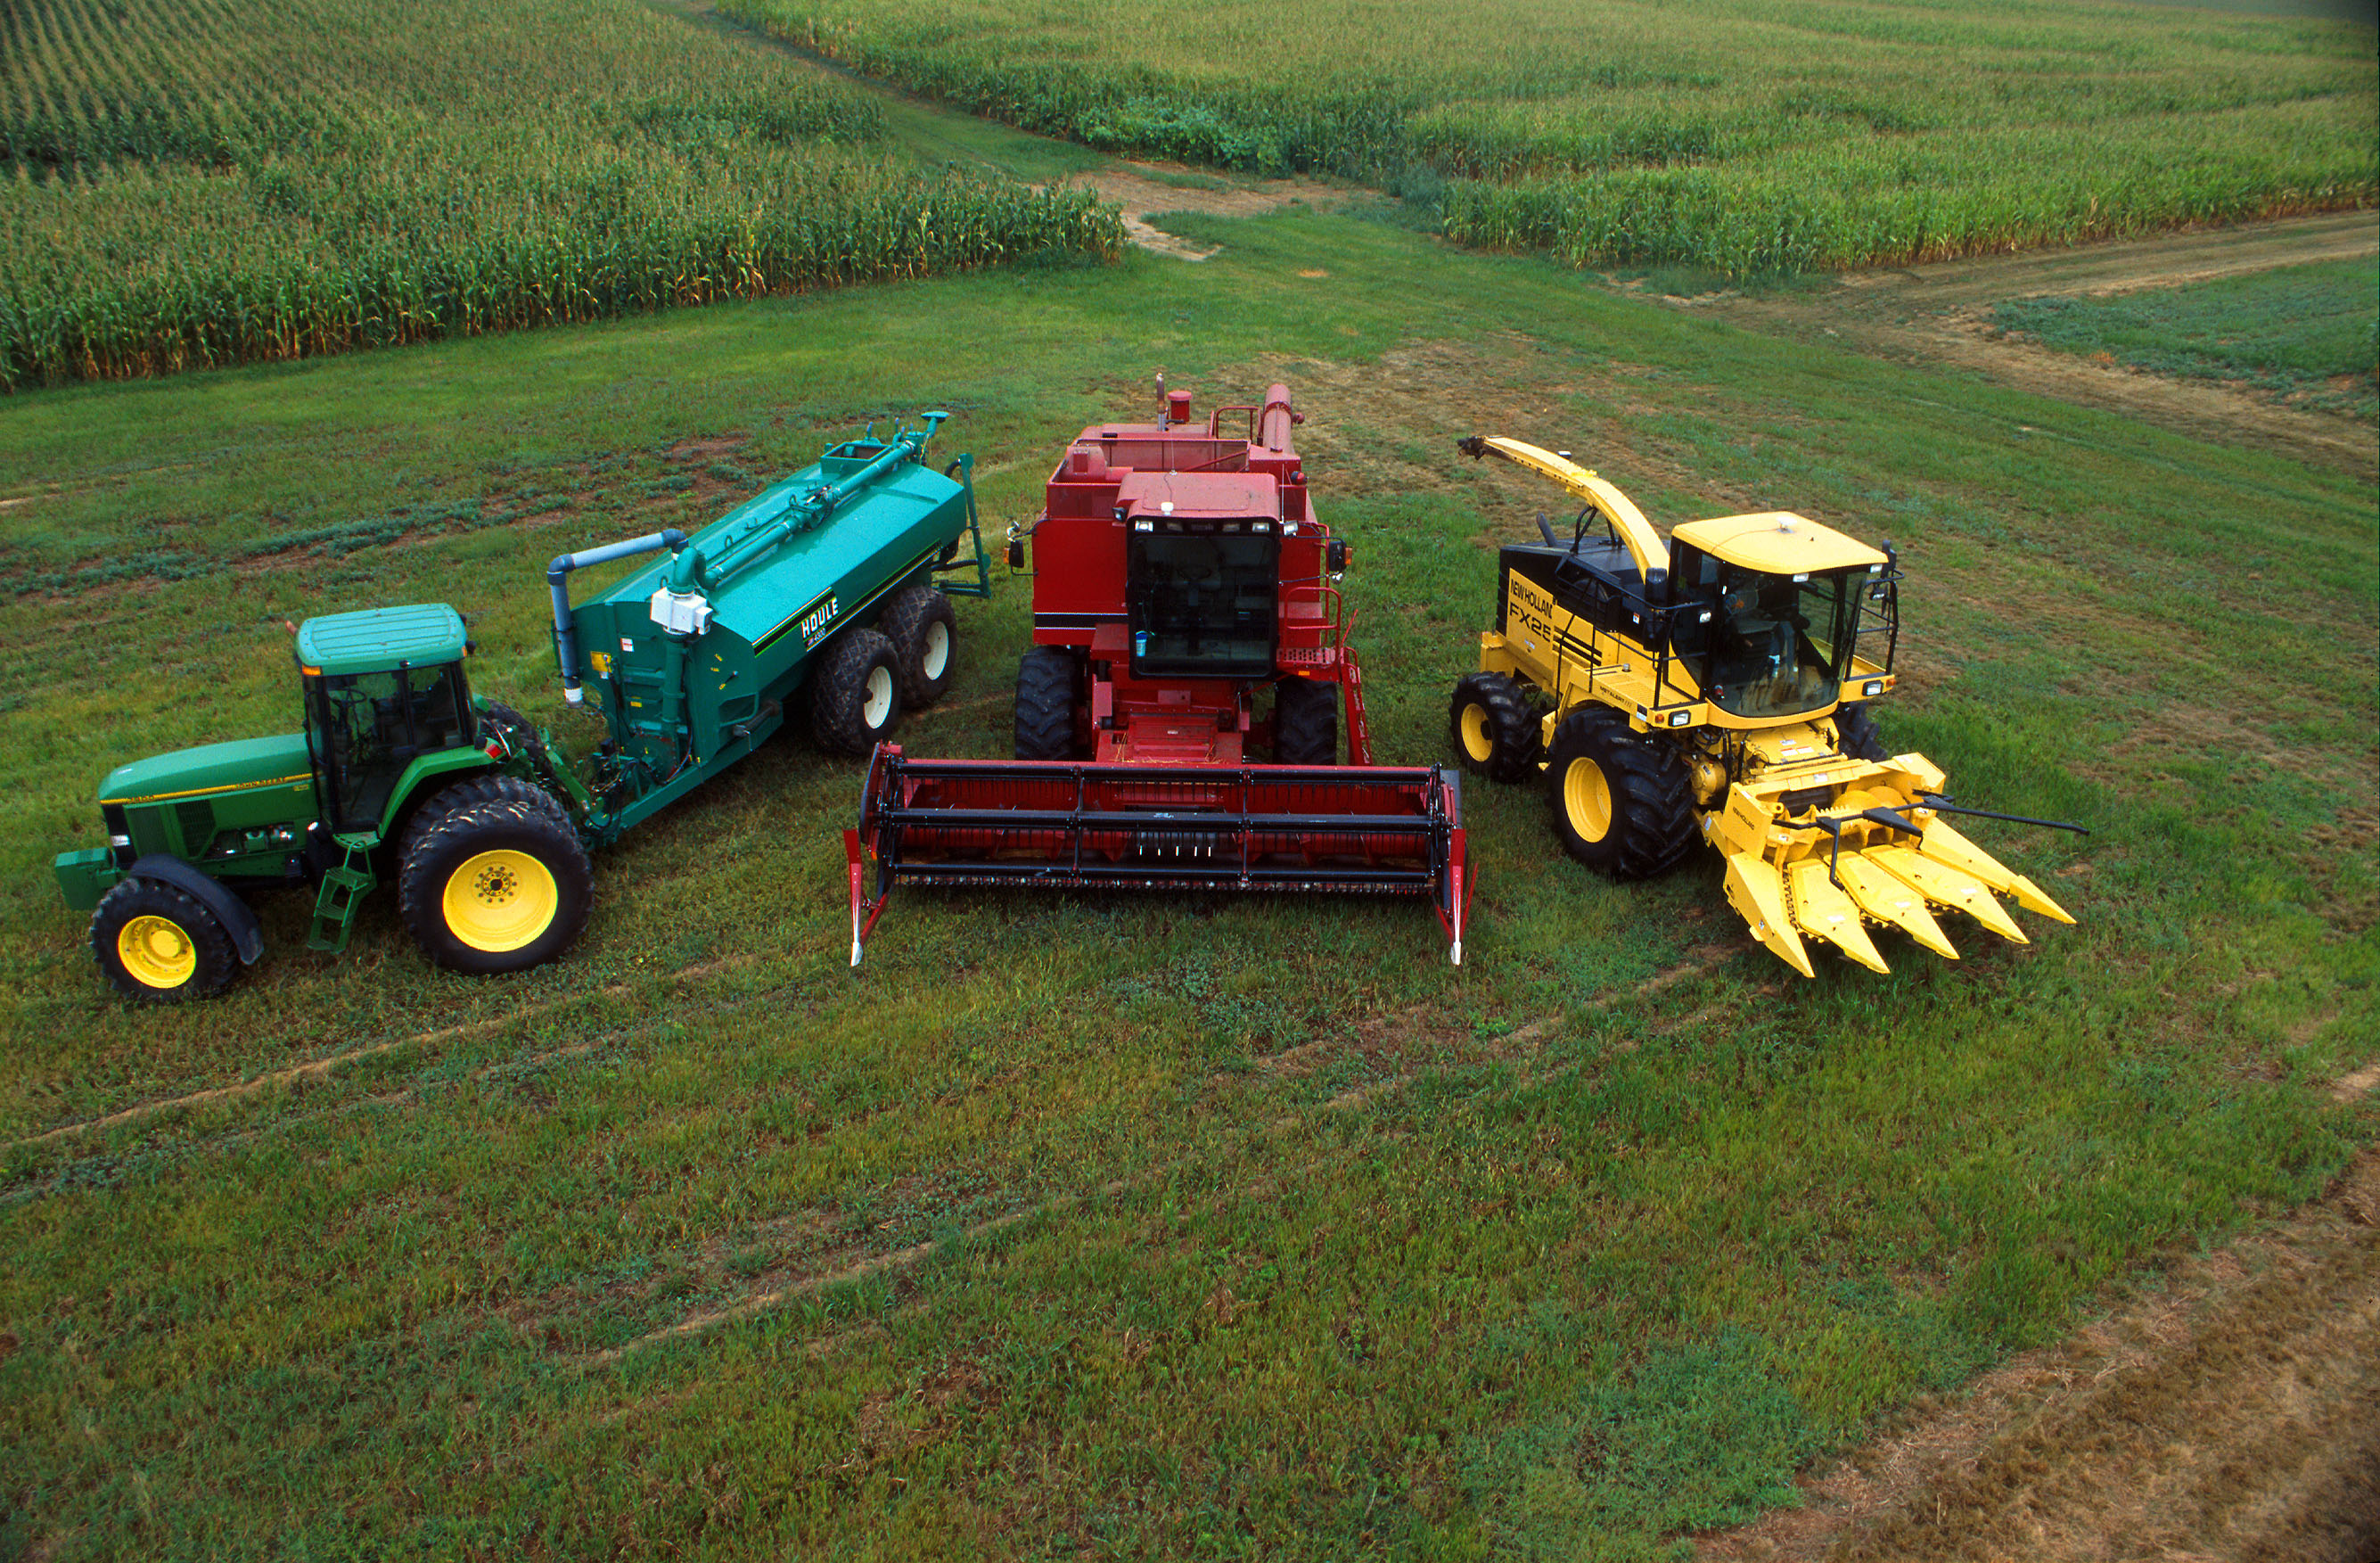 loans made the purchase of this farm machinery possible